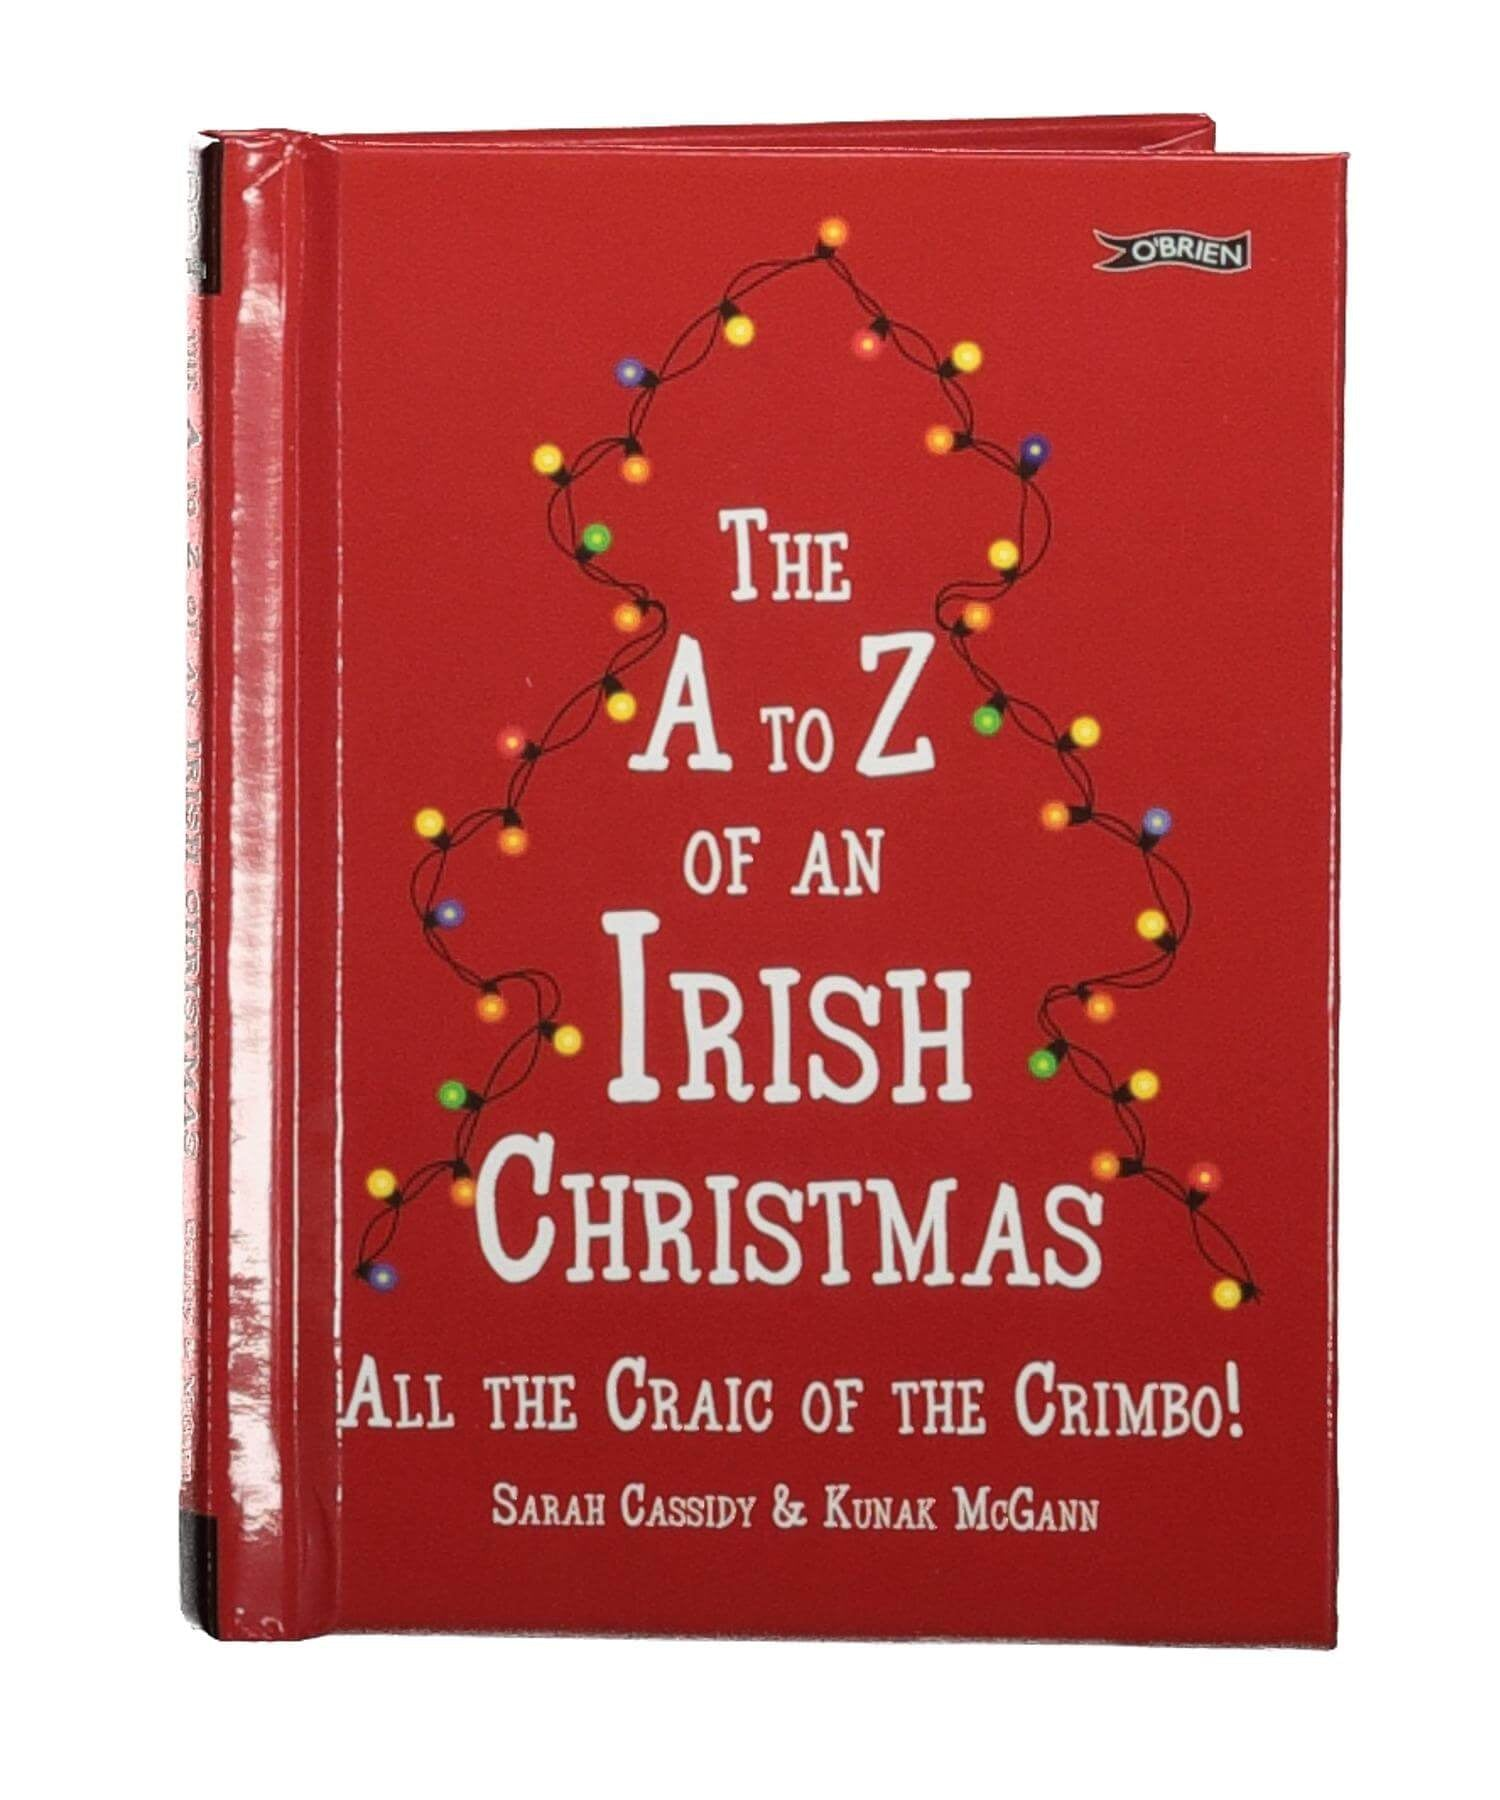 The A to Z of an Irish Christmas - [The O'Brien Press] - Books & Stationery - Irish Gifts